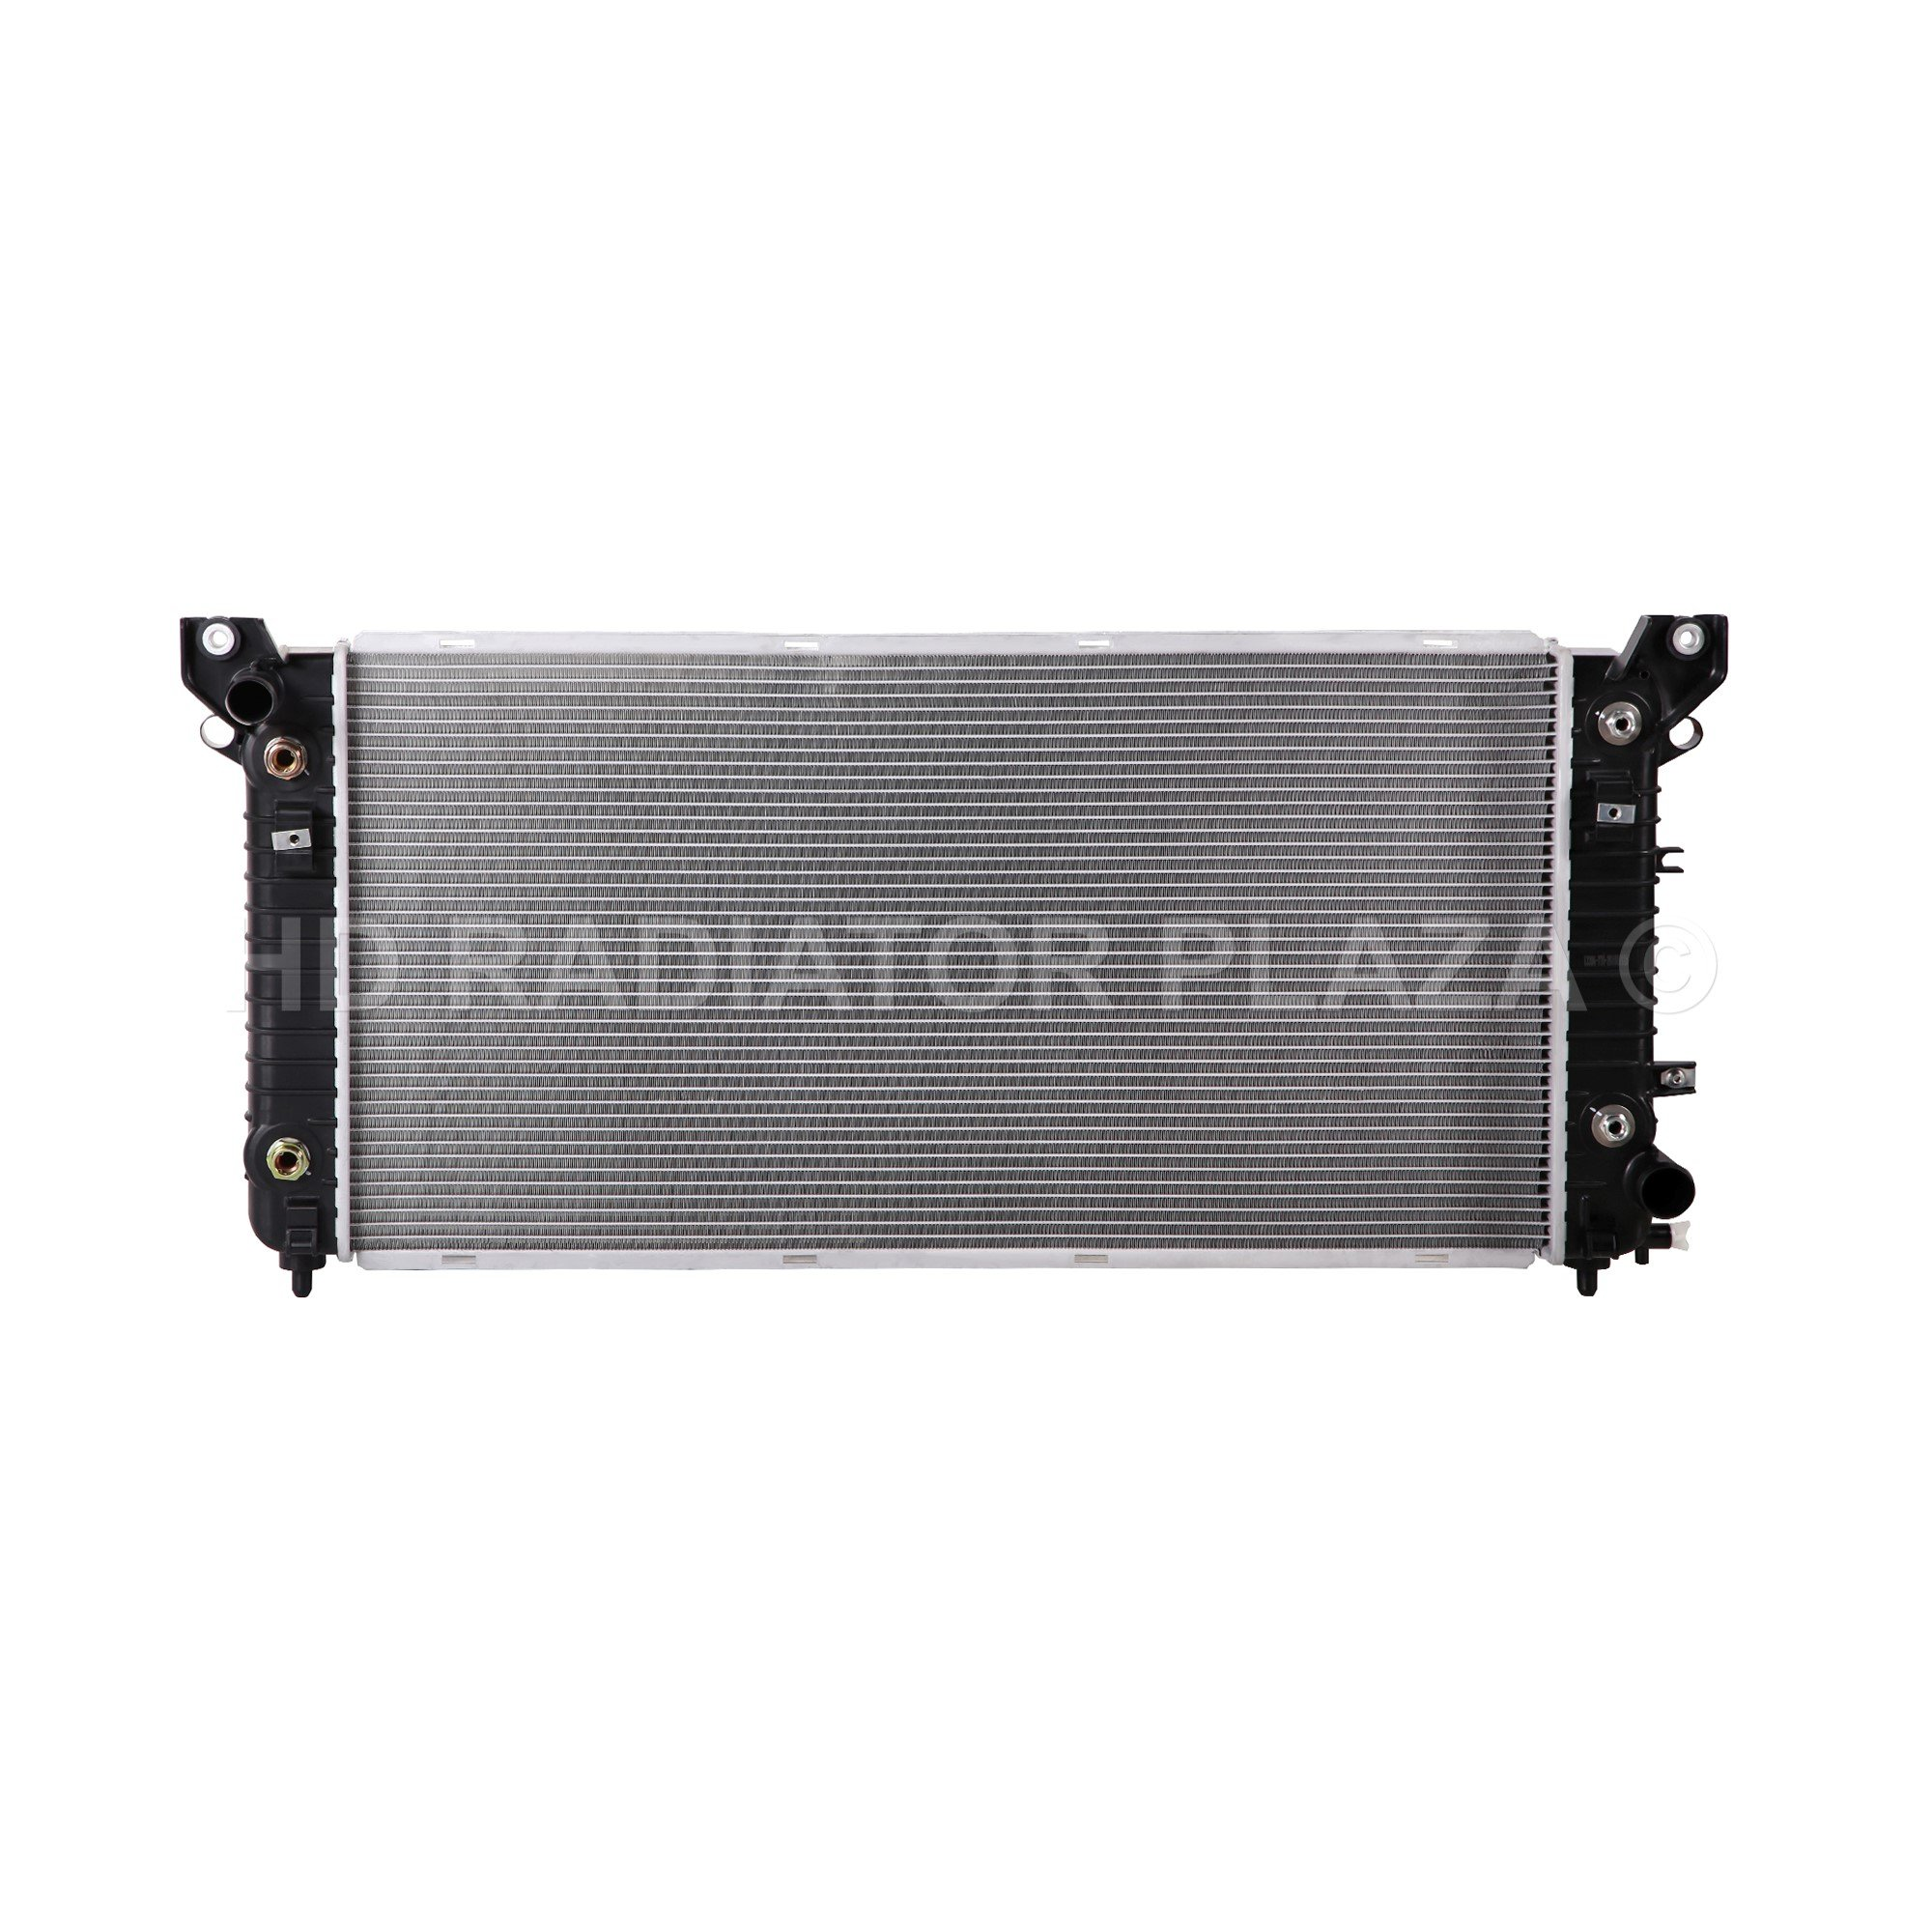 Radiator for 14-16 Chevrolet Silverado 1500, GMC Sierra 1500